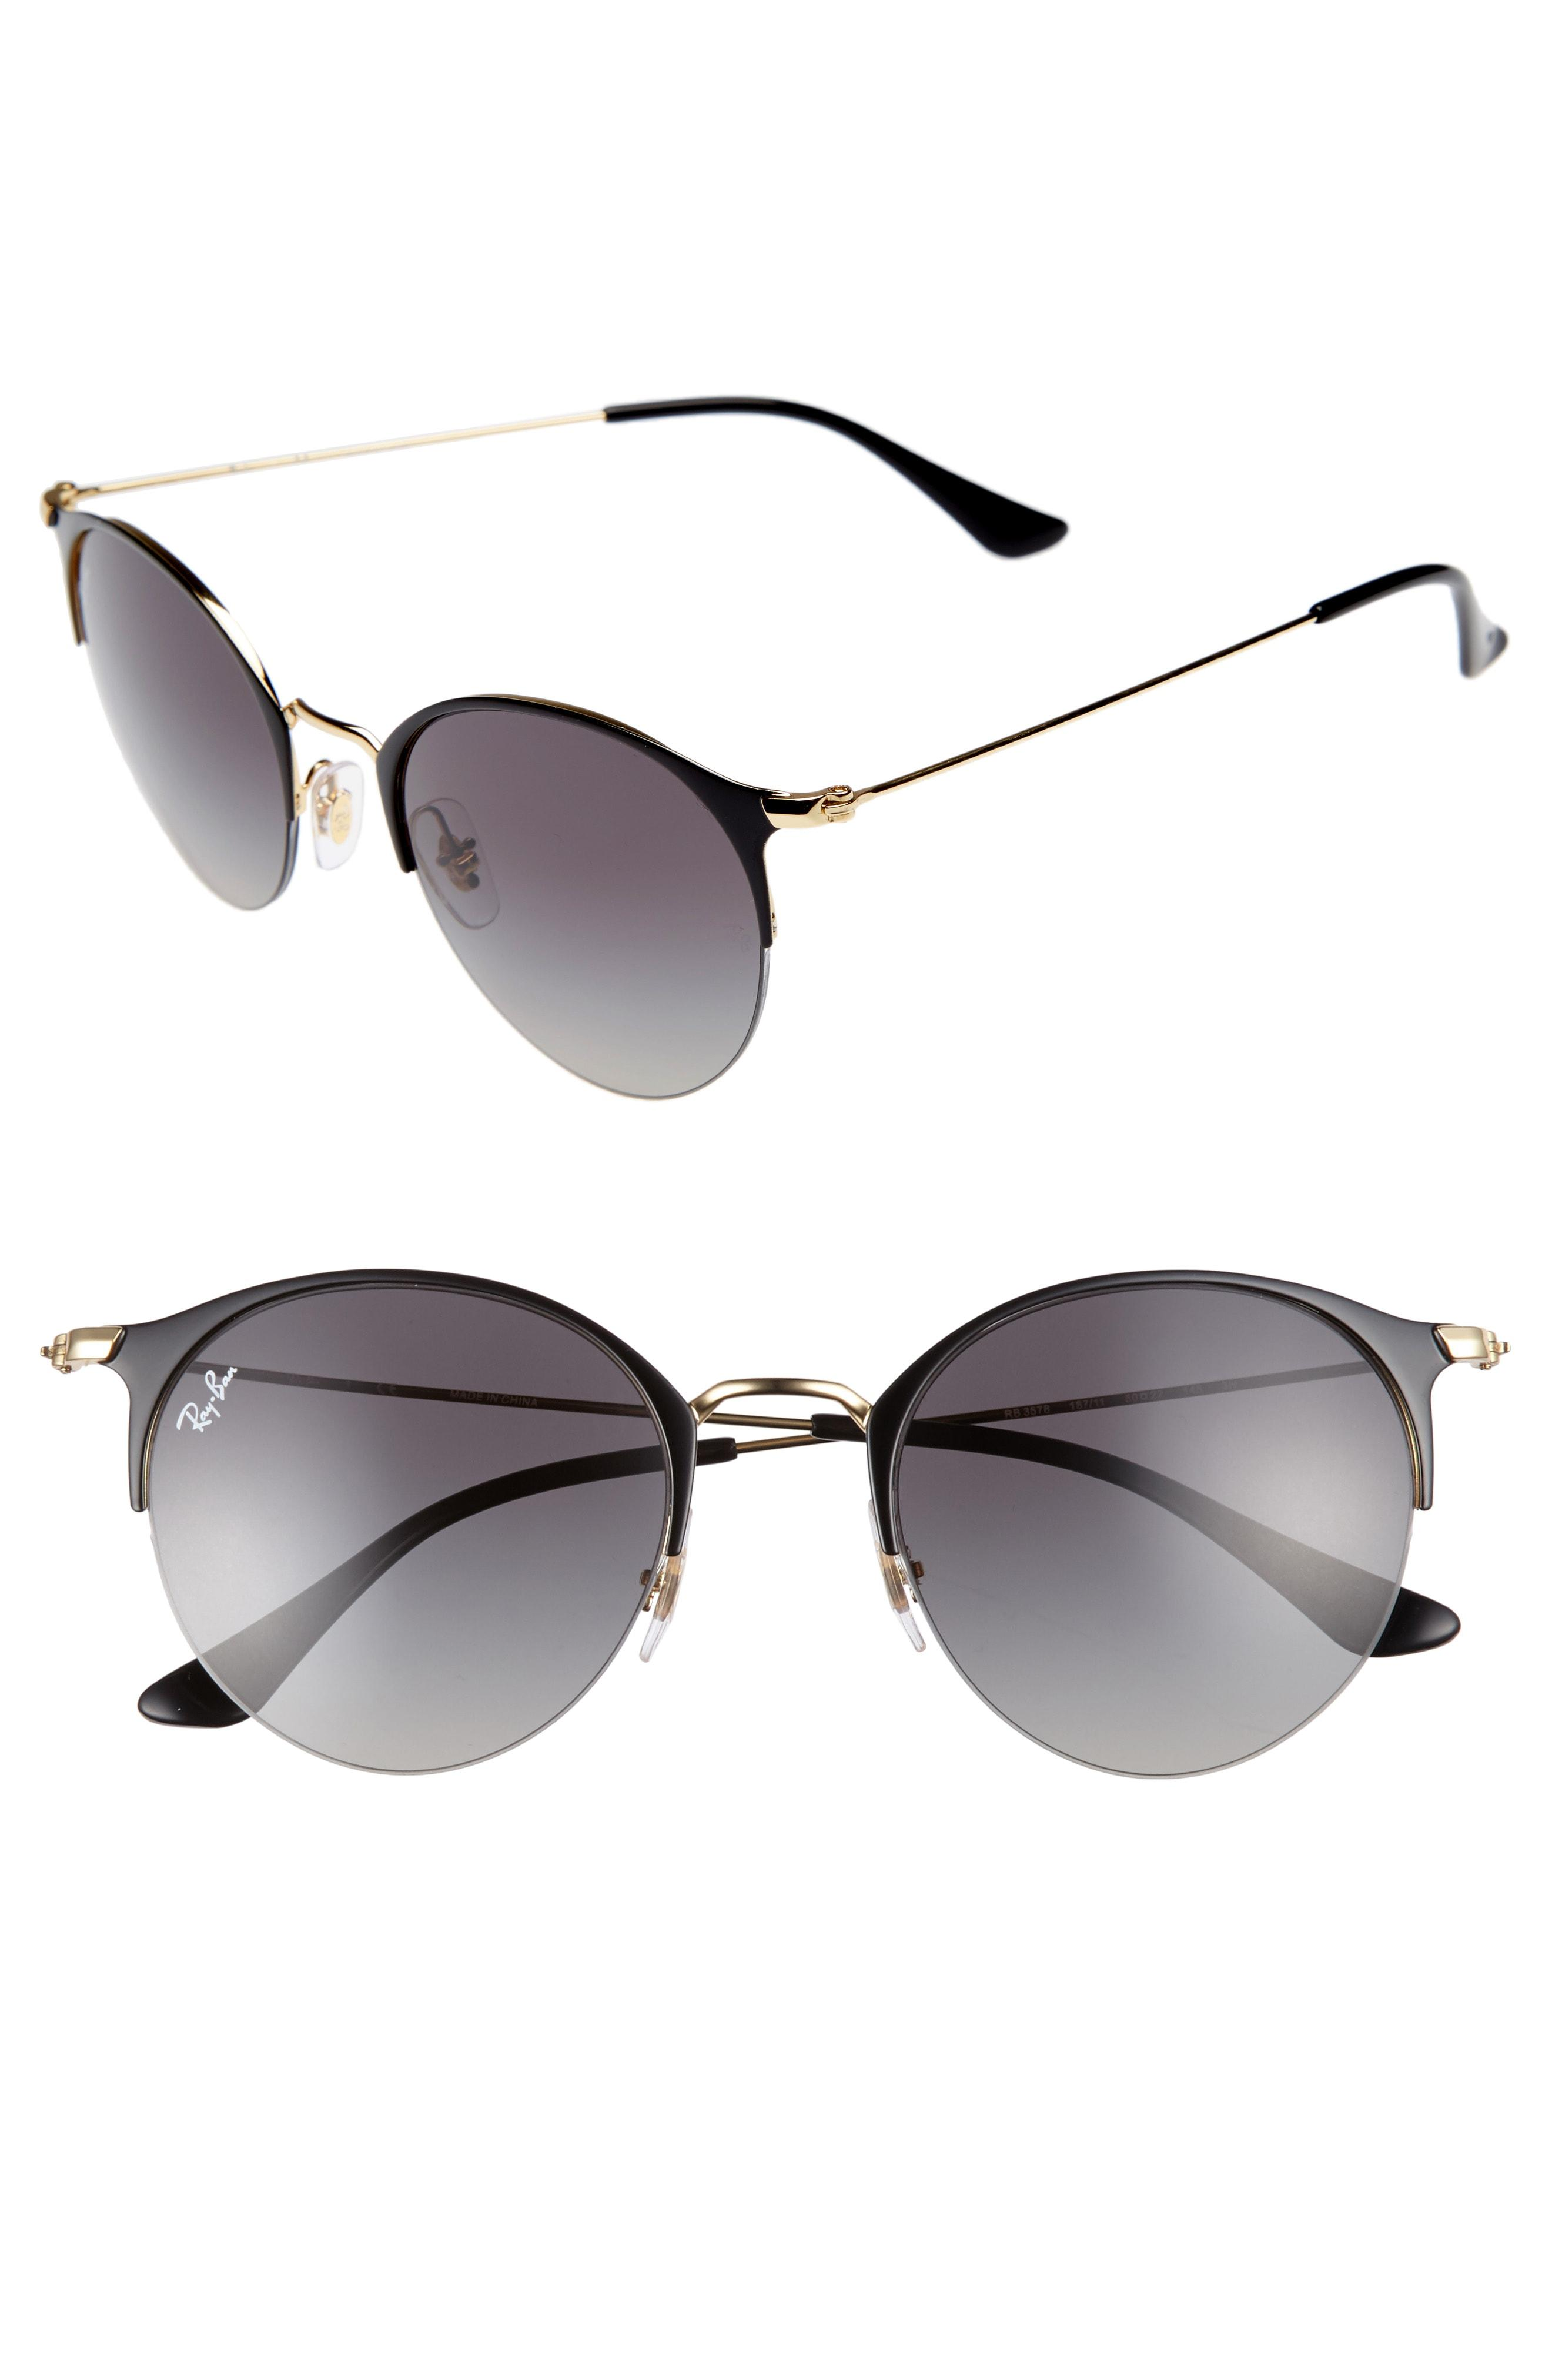 Lyst - Ray-Ban 50mm Blaze Clubmaster Mirrored Sunglasses in Metallic ... a8b7369bf